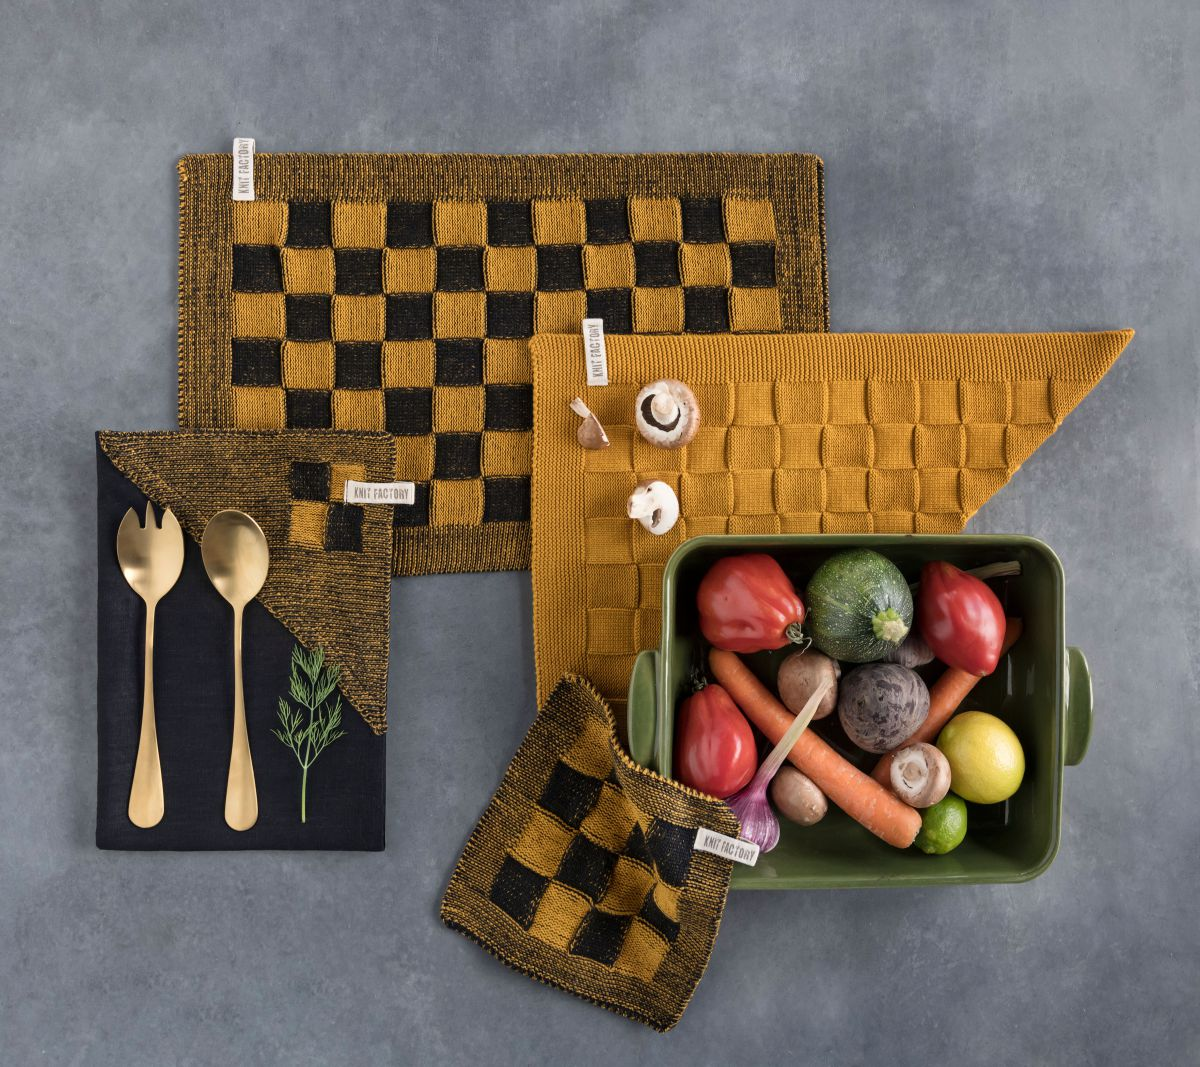 placemat block blackgranit